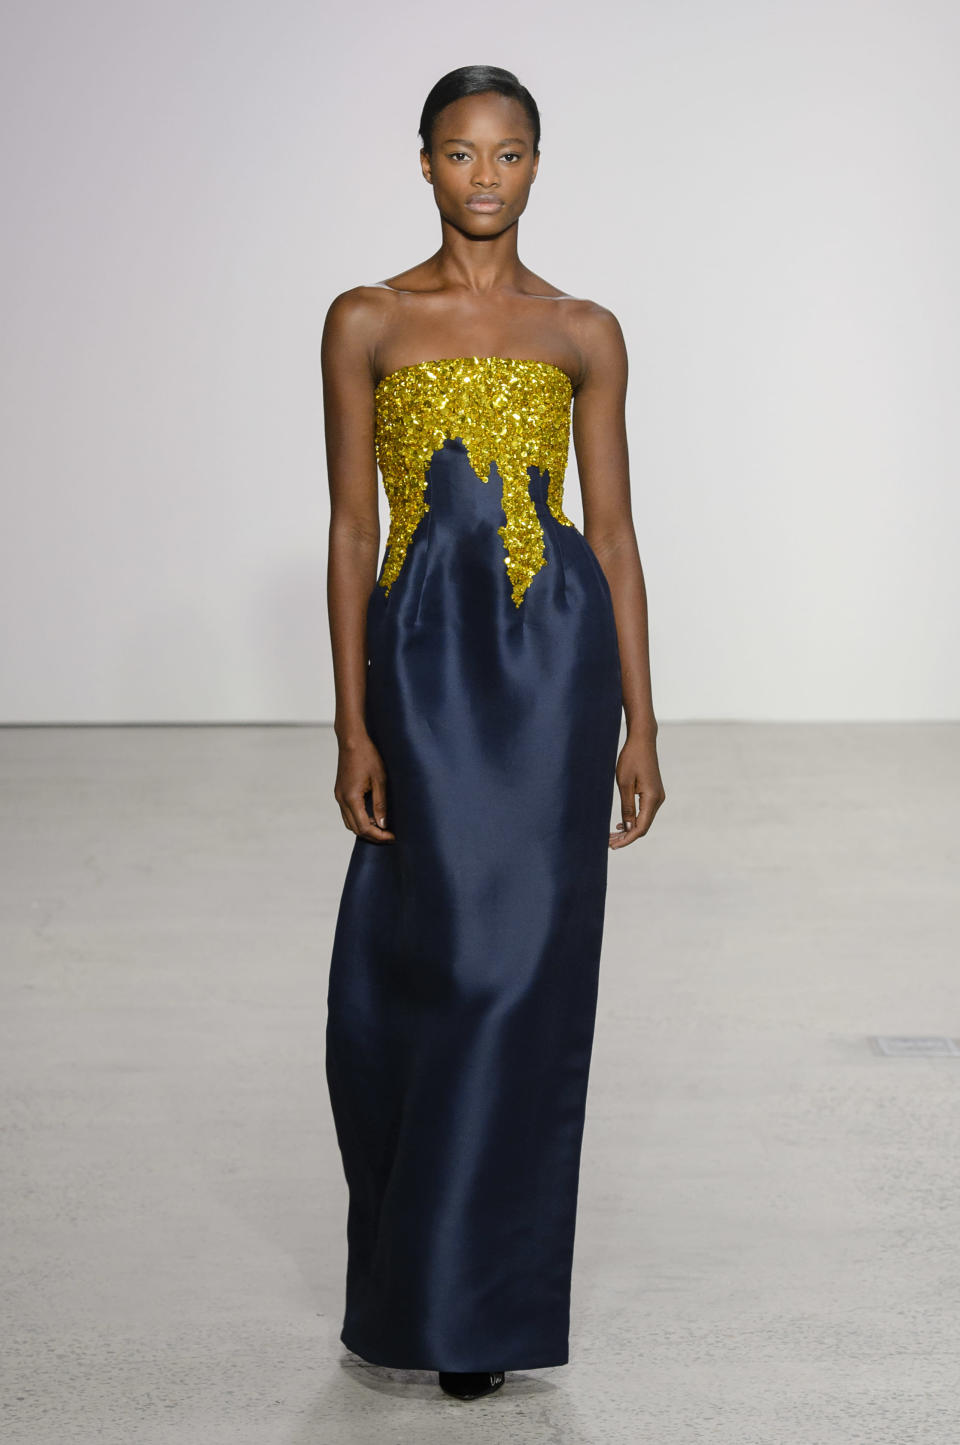 <p><i>Model wears a two-tone, yellow and navy sequin-embellished dress from the SS18 Oscar de la Renta collection. (Photo: IMAXtree) </i></p>